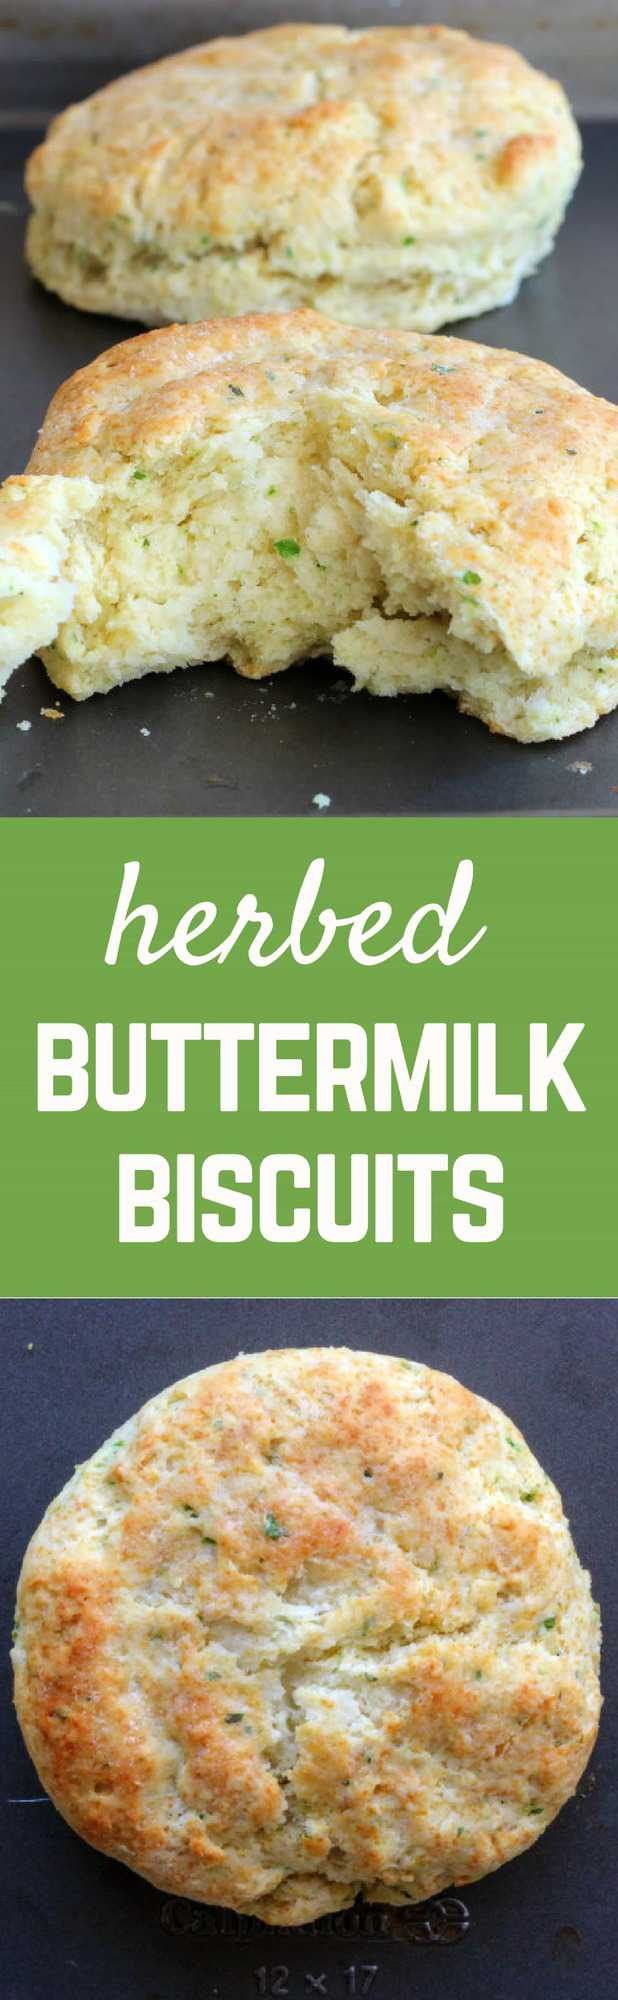 These herbed buttermilk biscuits are a great twist on your typical biscuit. Flaky, buttery layers with fresh herbs thrown in to break up the richness. Get the recipe on RachelCooks.com